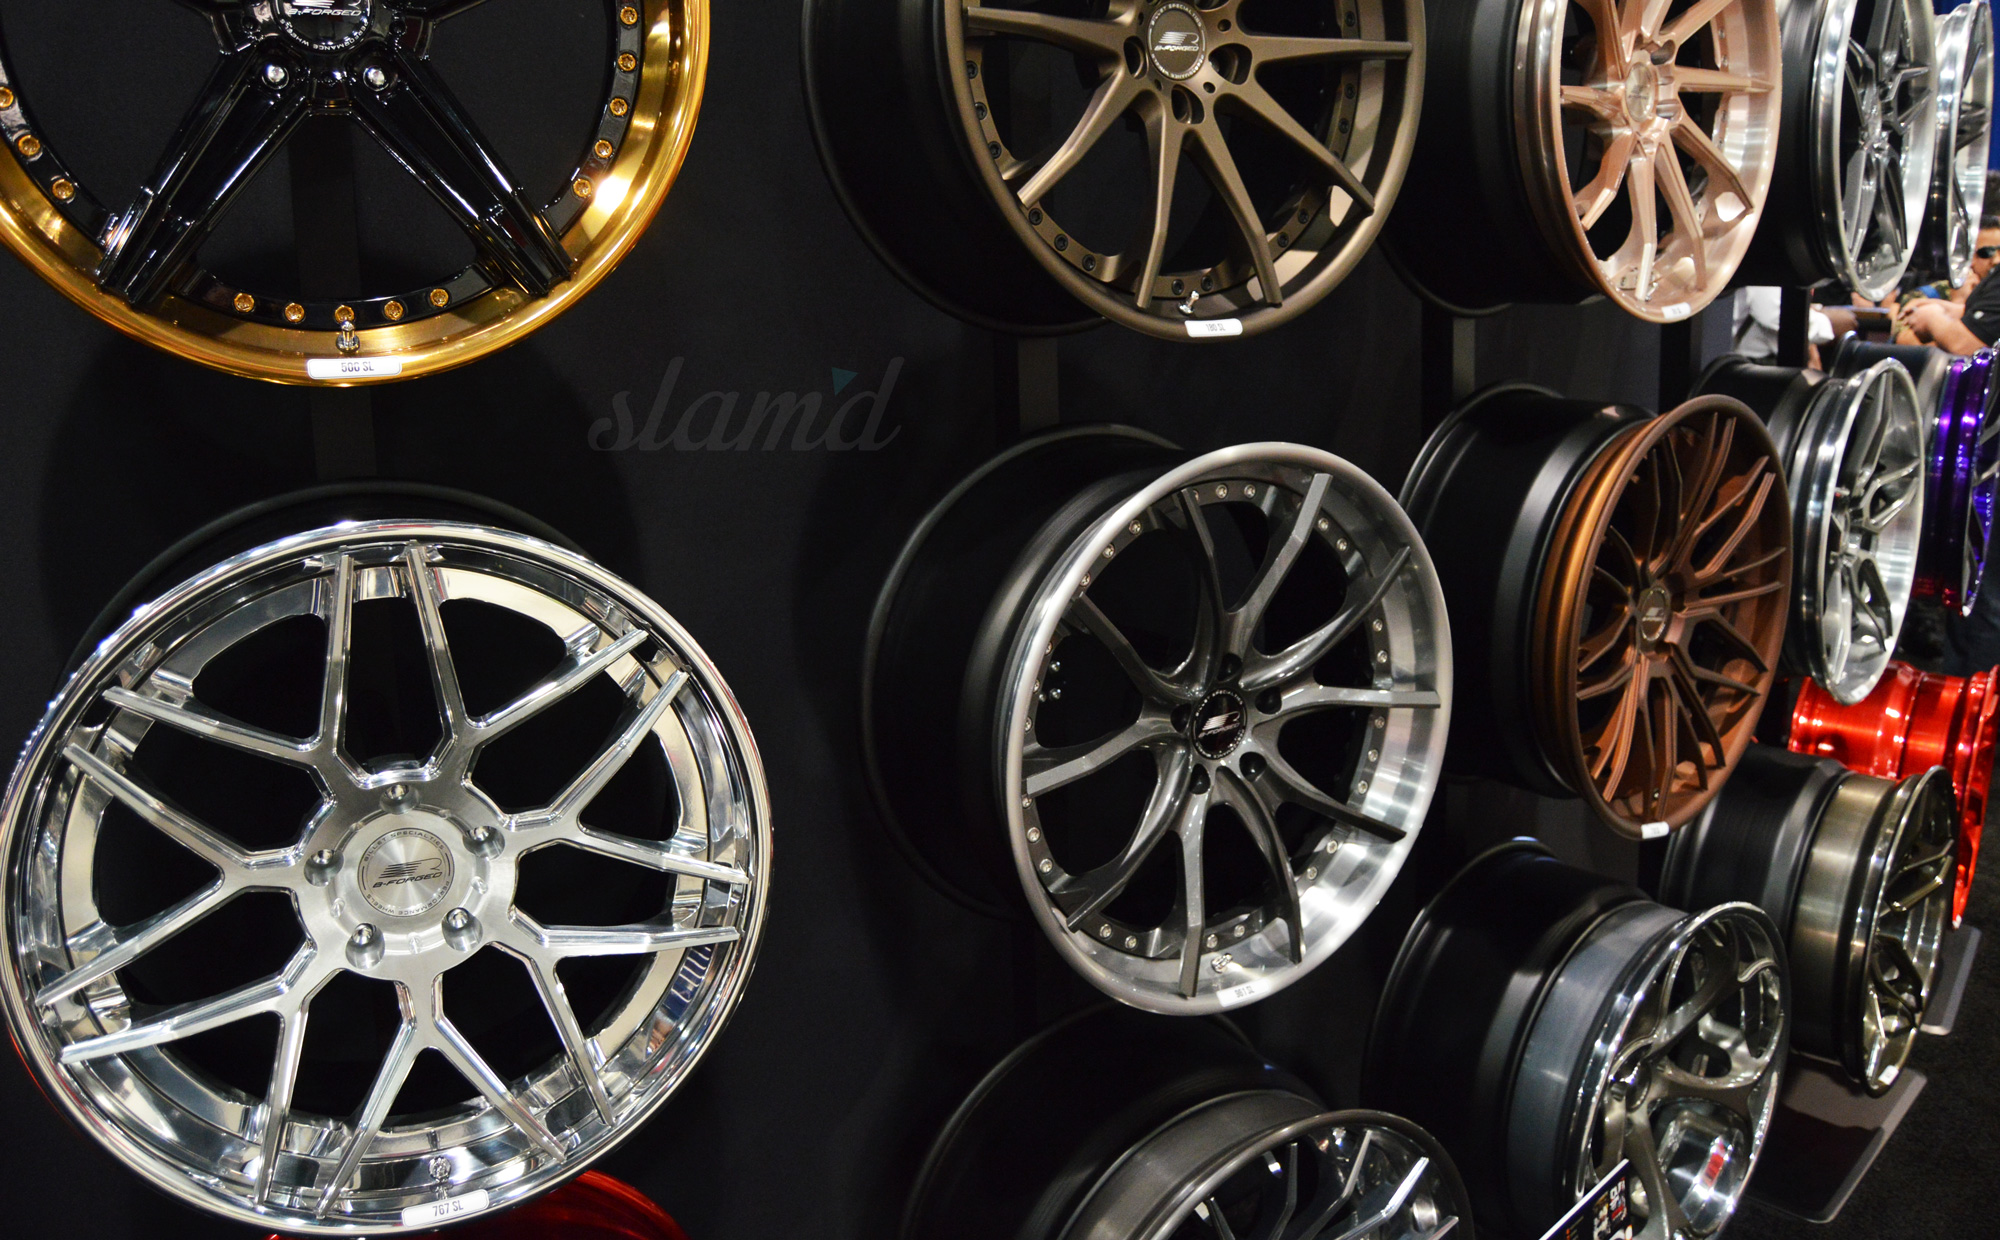 slamd-semaproducts-23